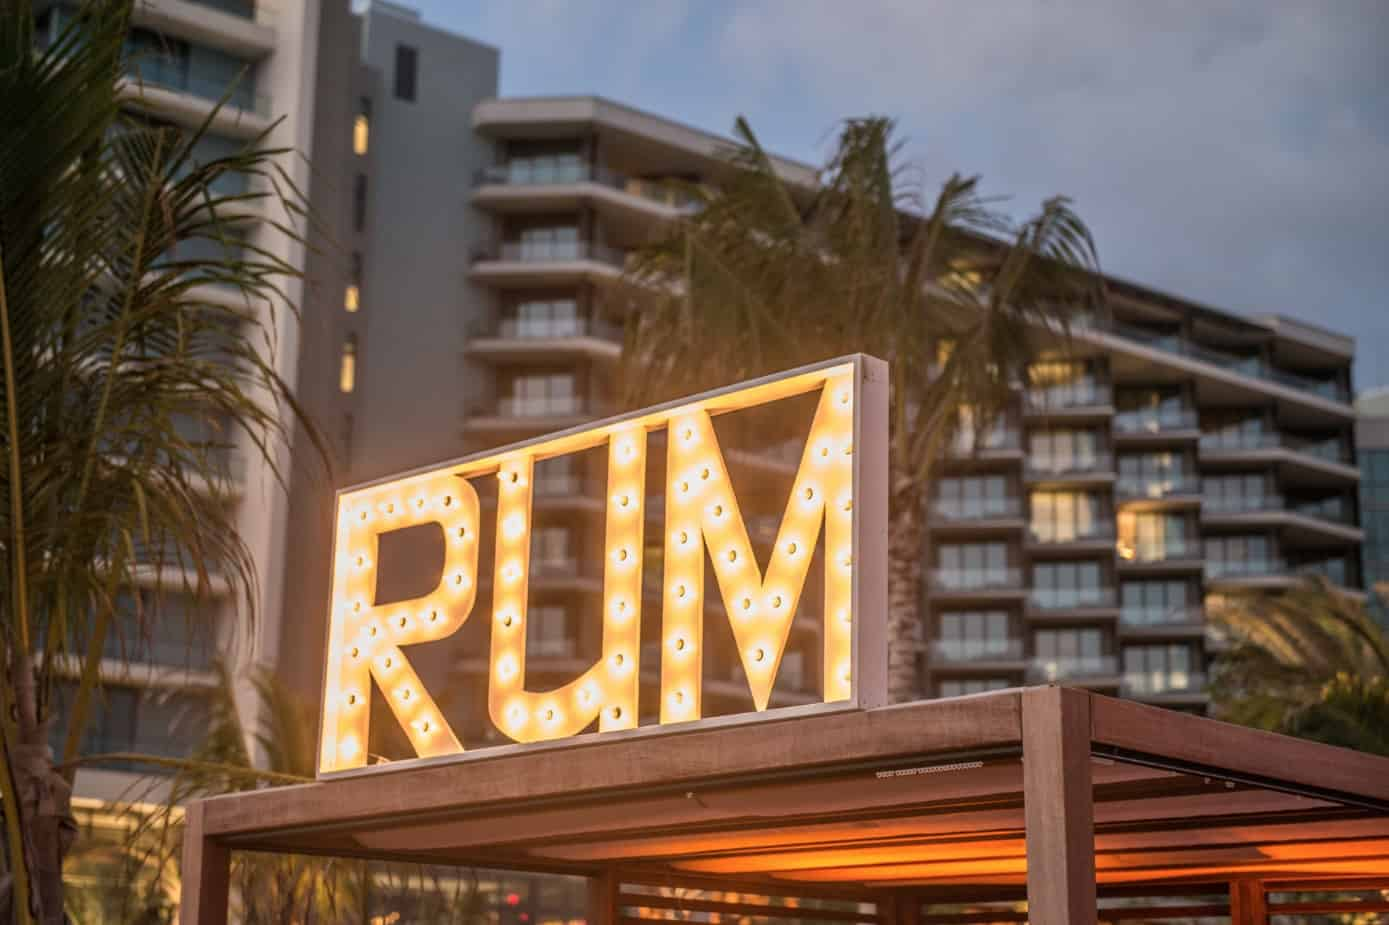 rum-bar-cayman-islands-beach-reception-corporate-event-by-celebrations-ltd